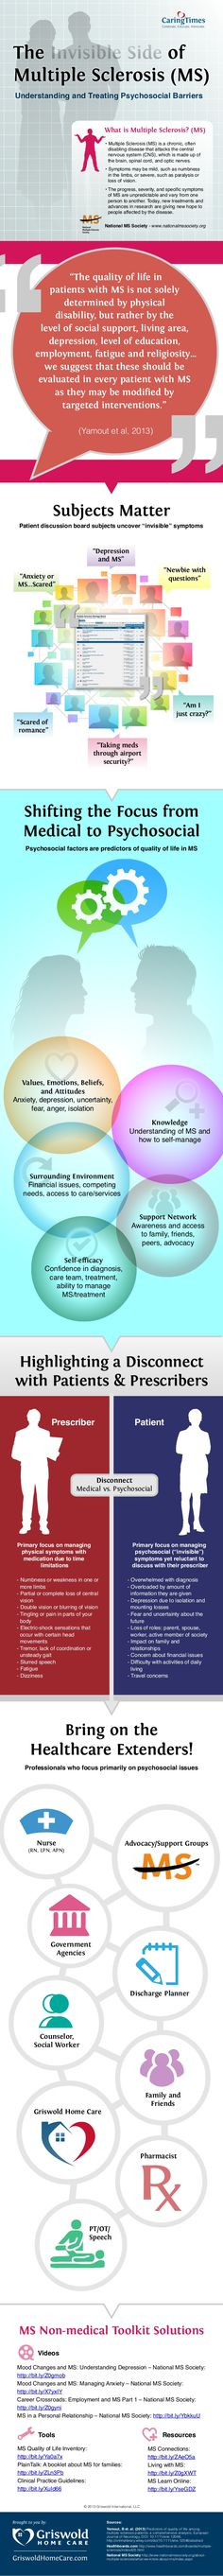 """[Infographic] The """"Invisible"""" Side of Multiple Sclerosis: Understanding and Treating Psychosocial Barriers by Griswold Home Care via slideshare. This is for MS, but the same issues pertain to EDS / Ehlers-Danlos Syndrome. This is really interesting!"""